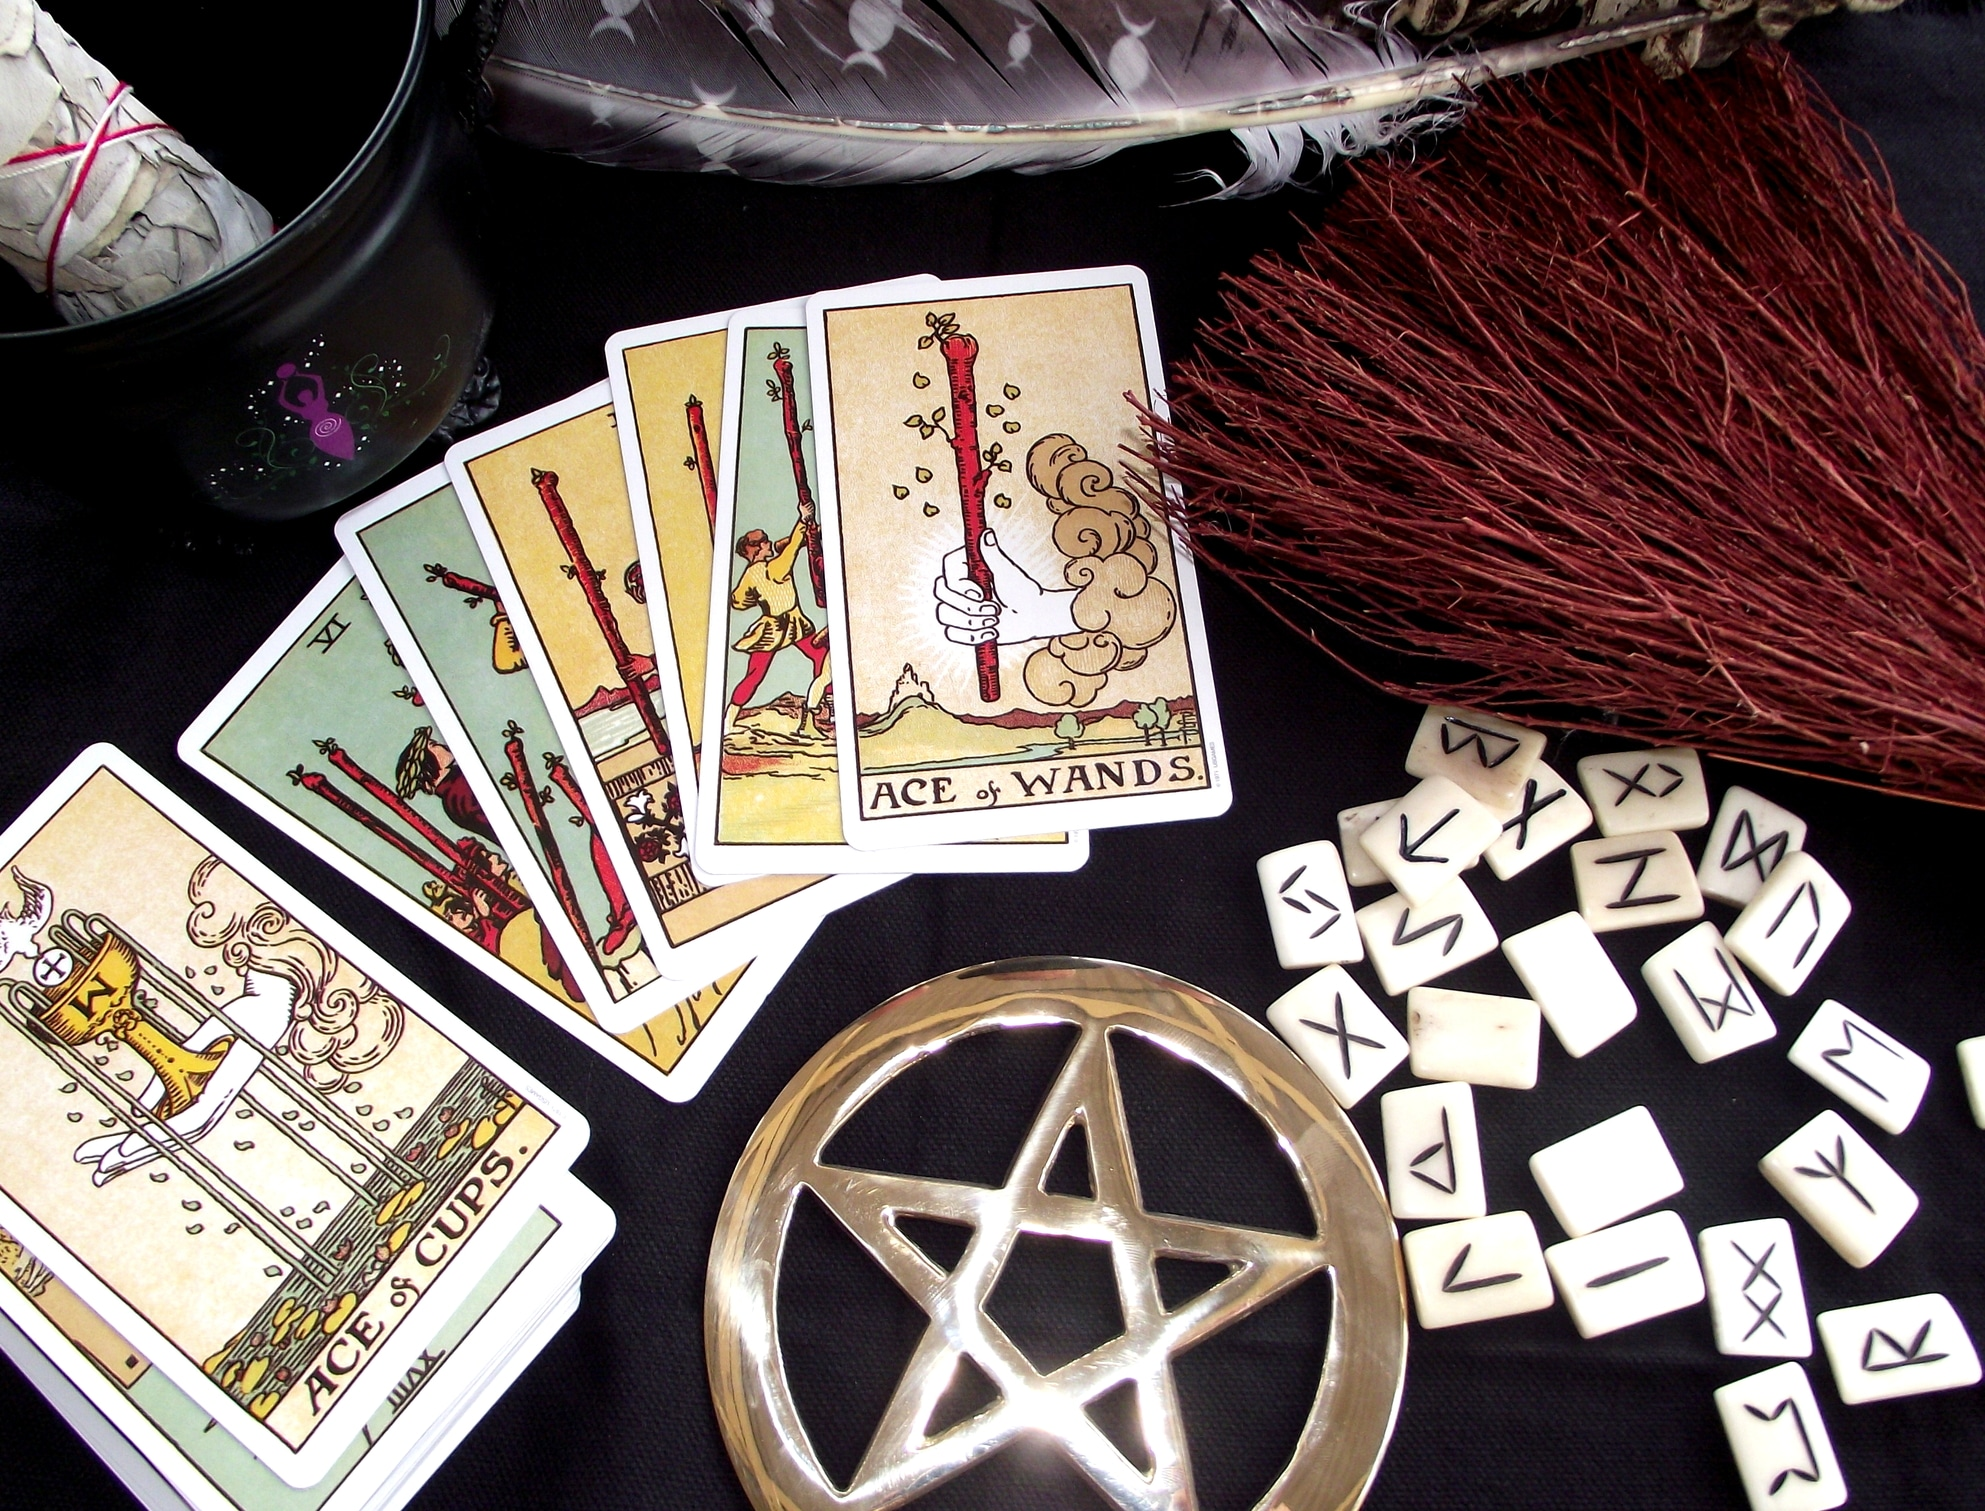 Should We Be Worried About Witchcraft?